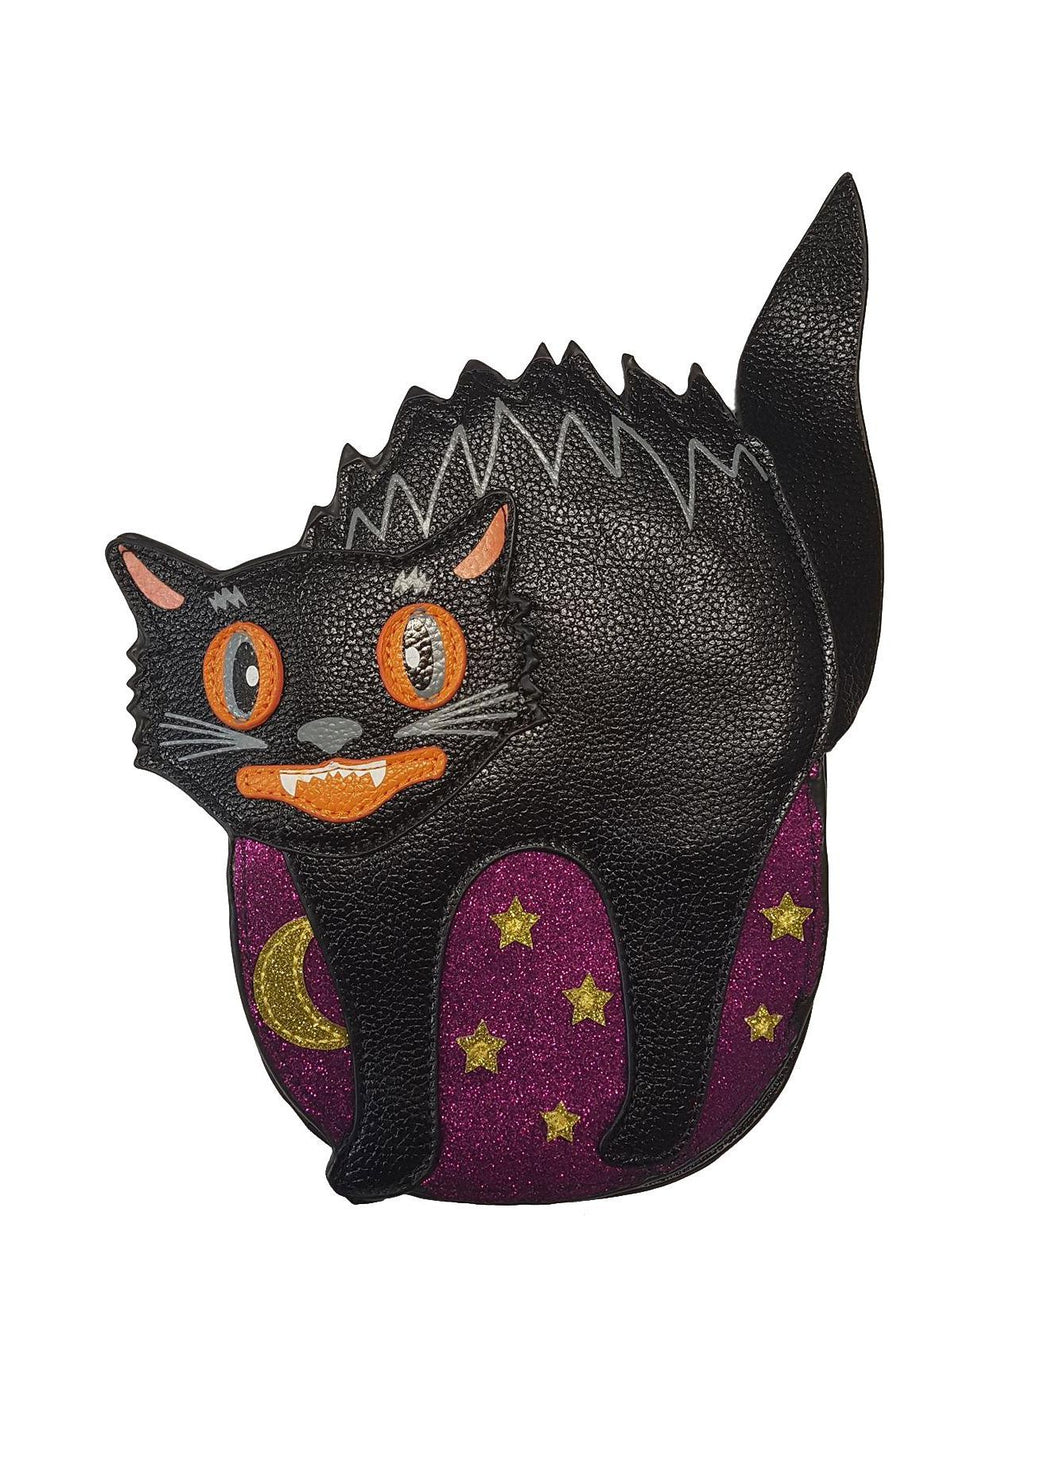 Sleepyville Critters Scared Cat Bag - Kate's Clothing